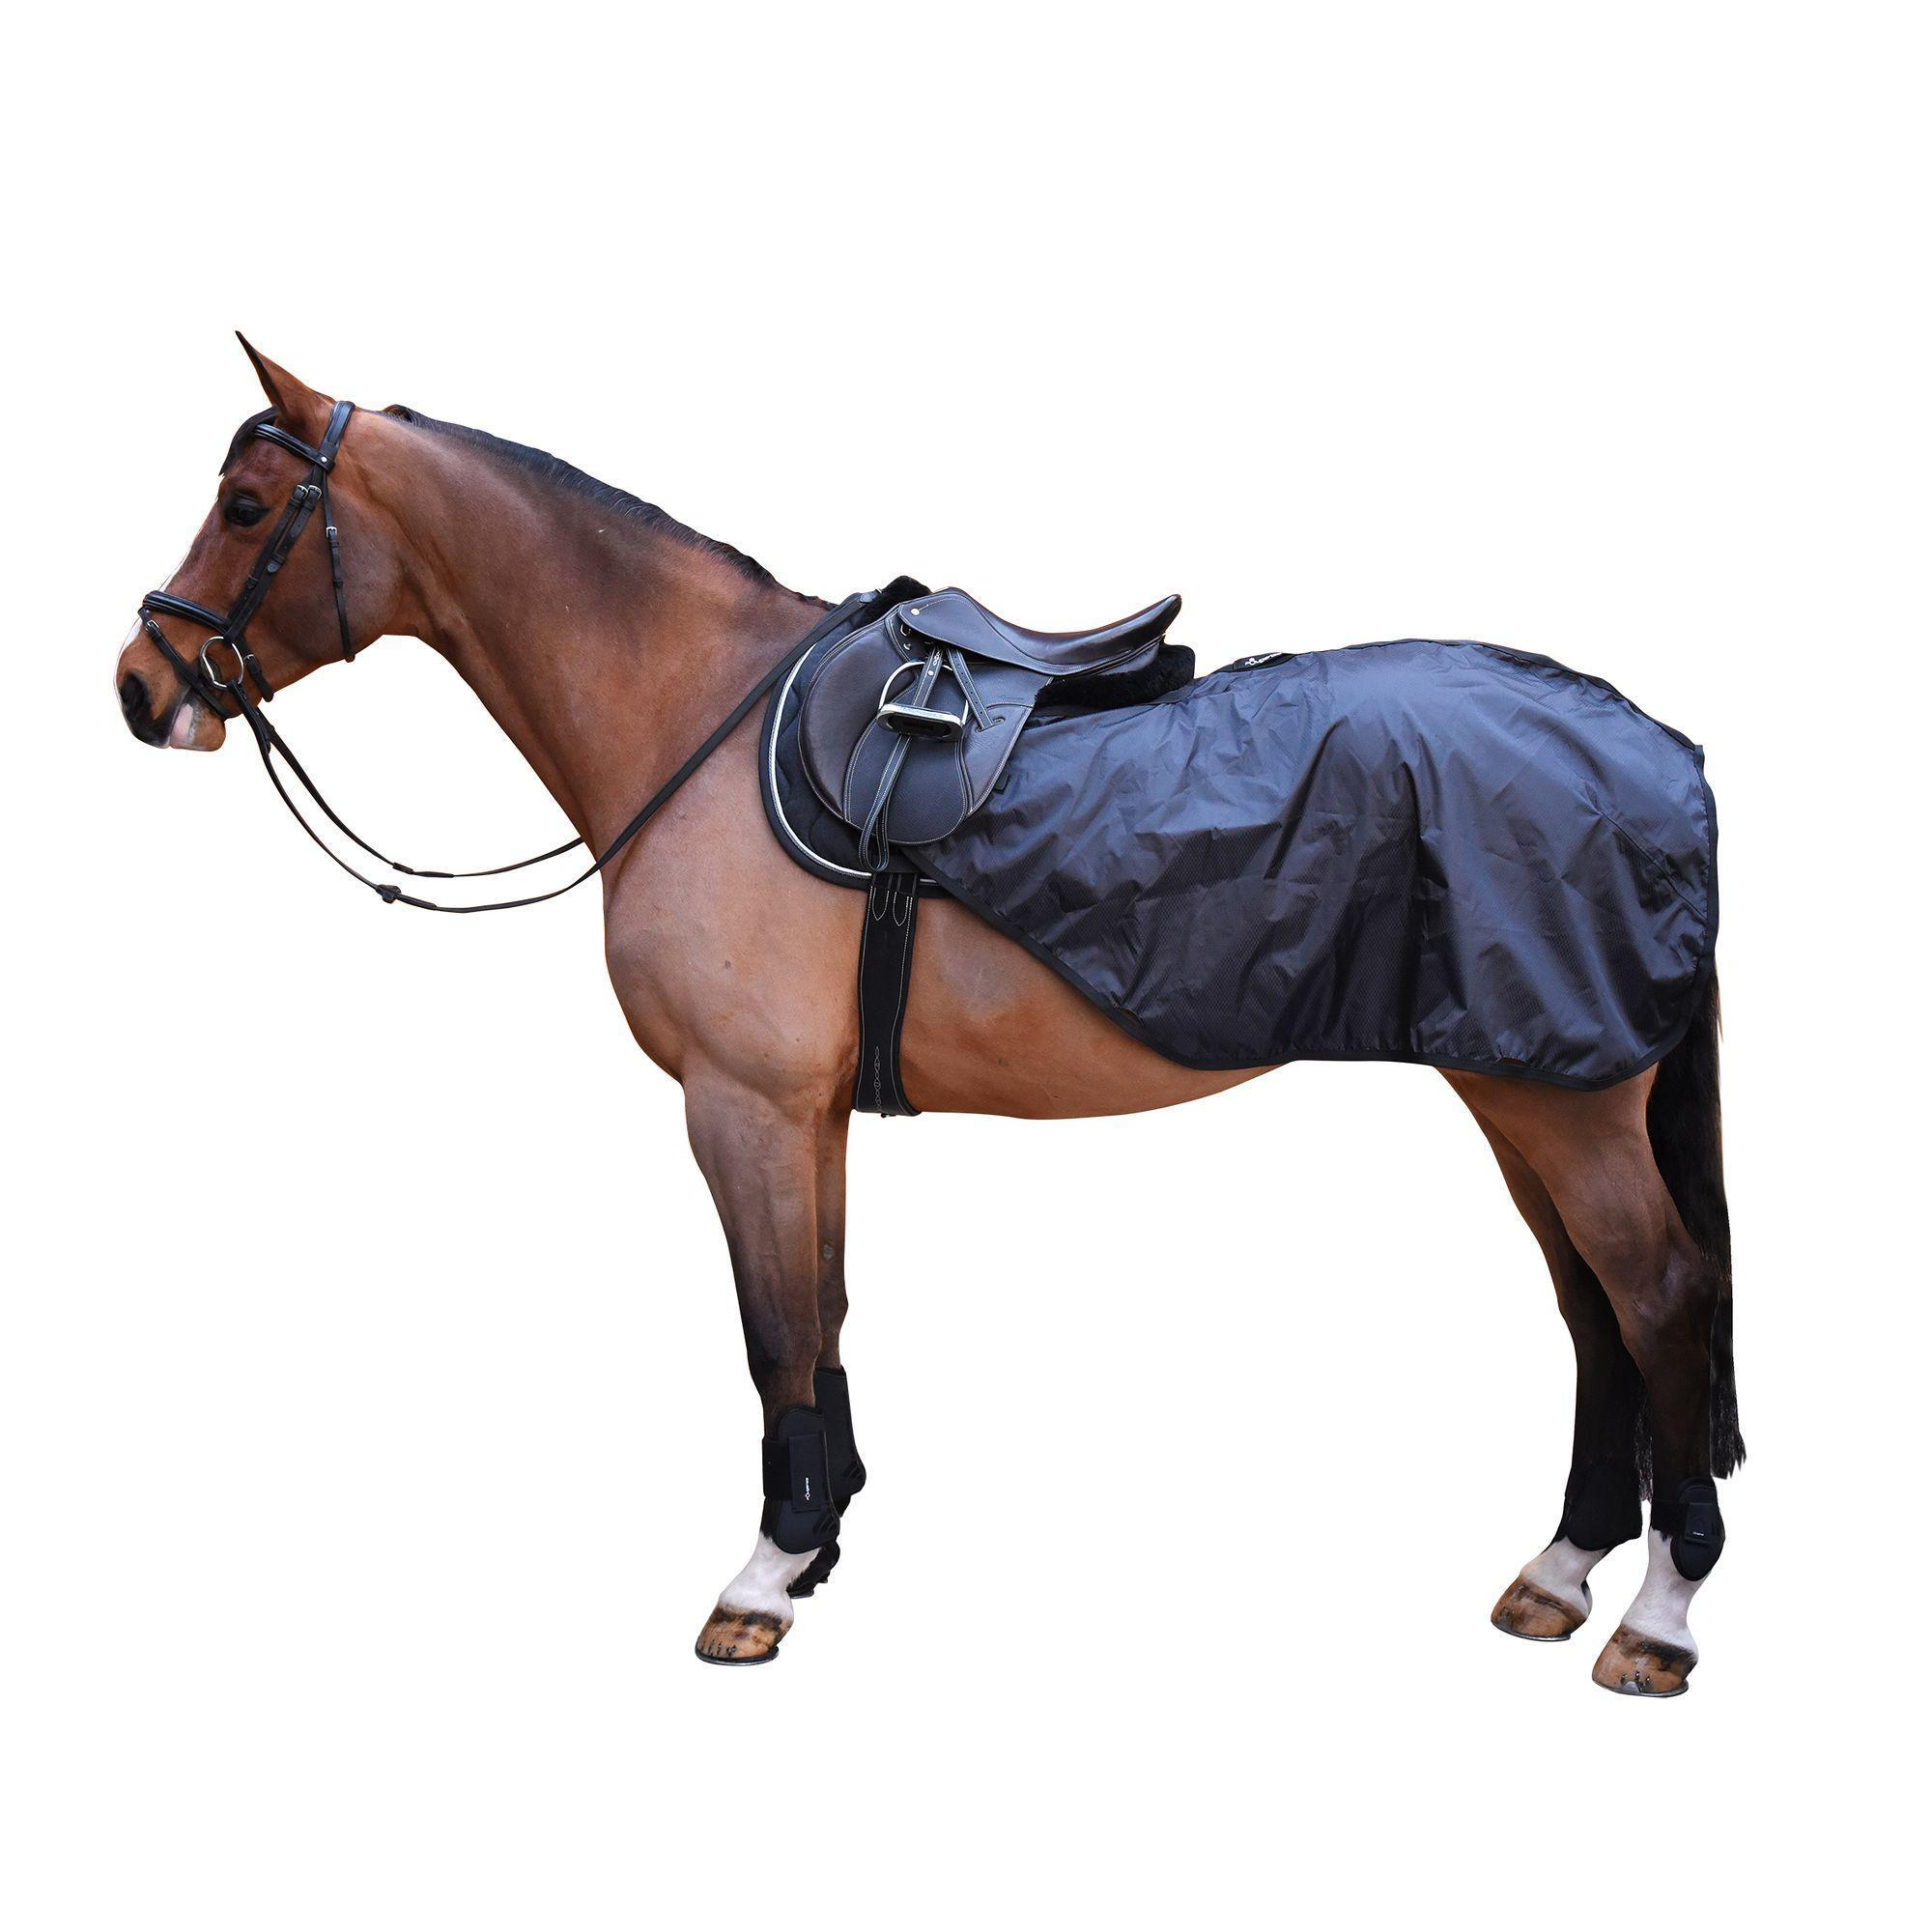 Allweather Horse Riding Exercise Rug Sizes For Horses And Ponies   Black |  Fouganza